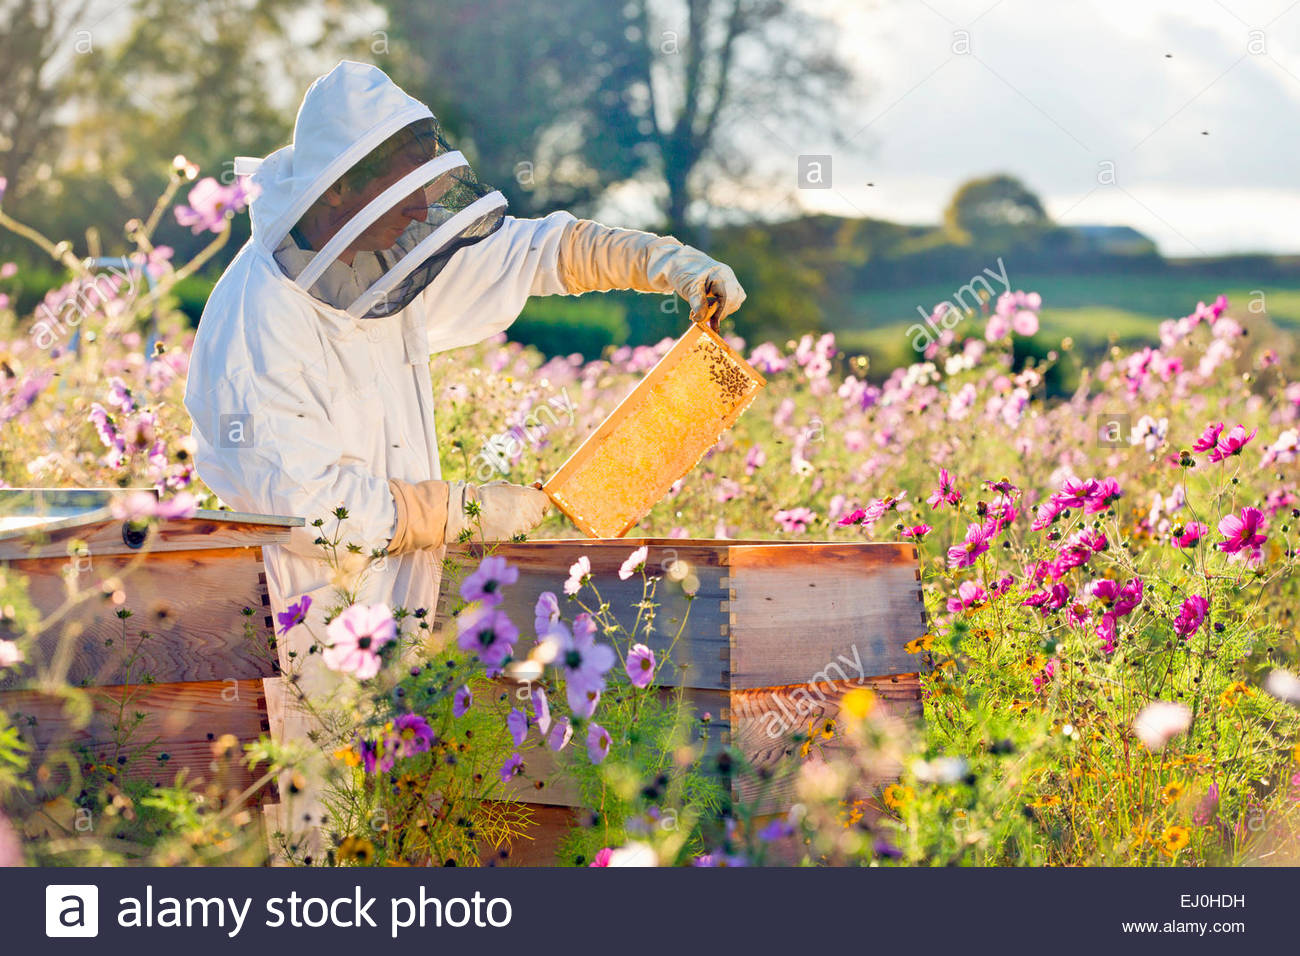 Beekeeper checking honey on beehive frame in field full of flowers - Stock Image